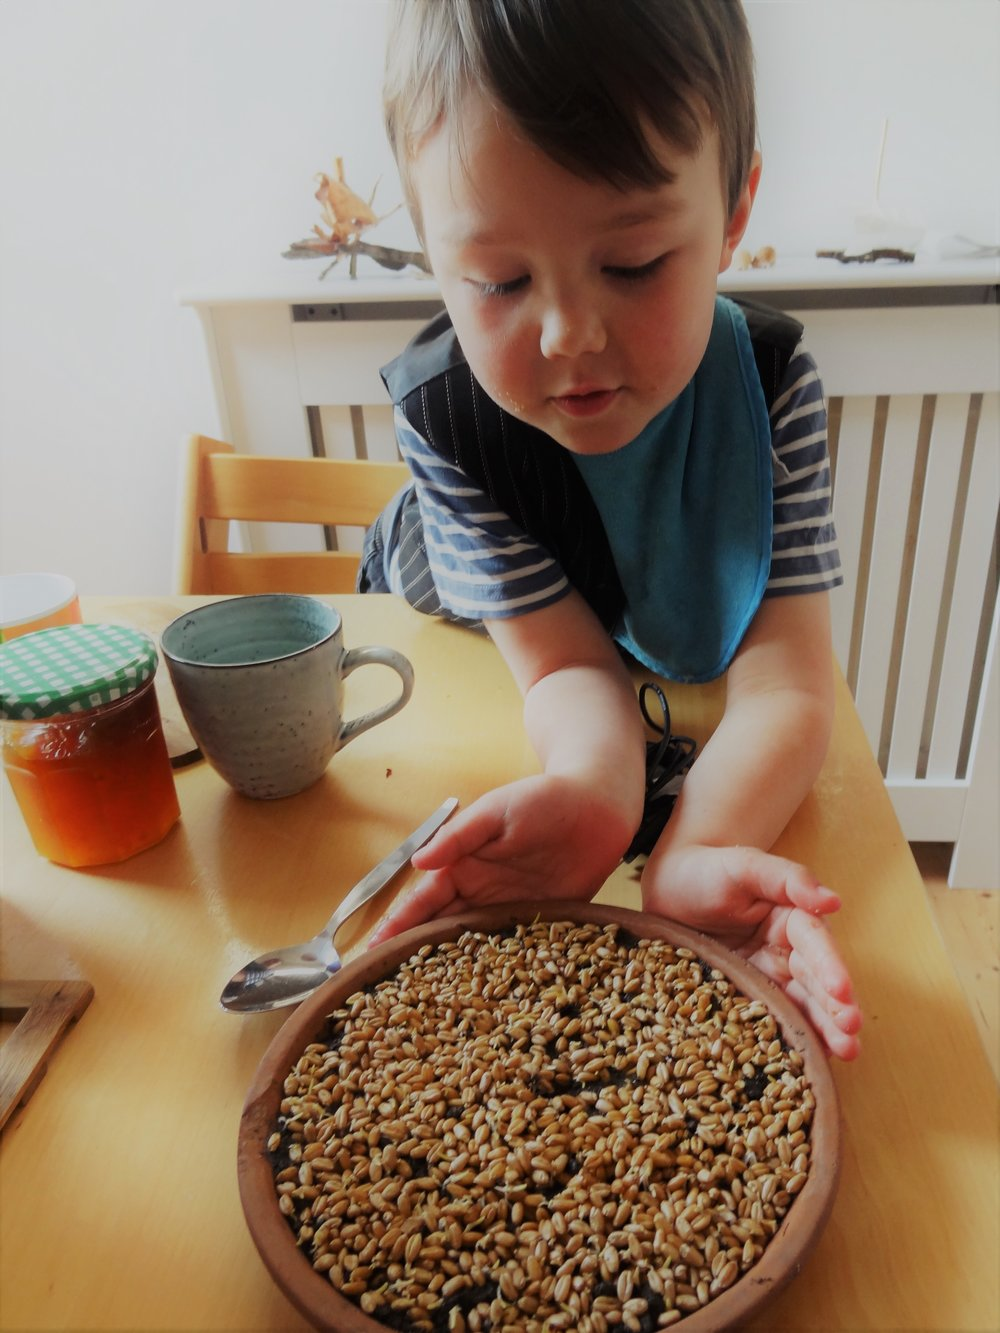 Sprinkle the wheat grass seeds evenly over the compost